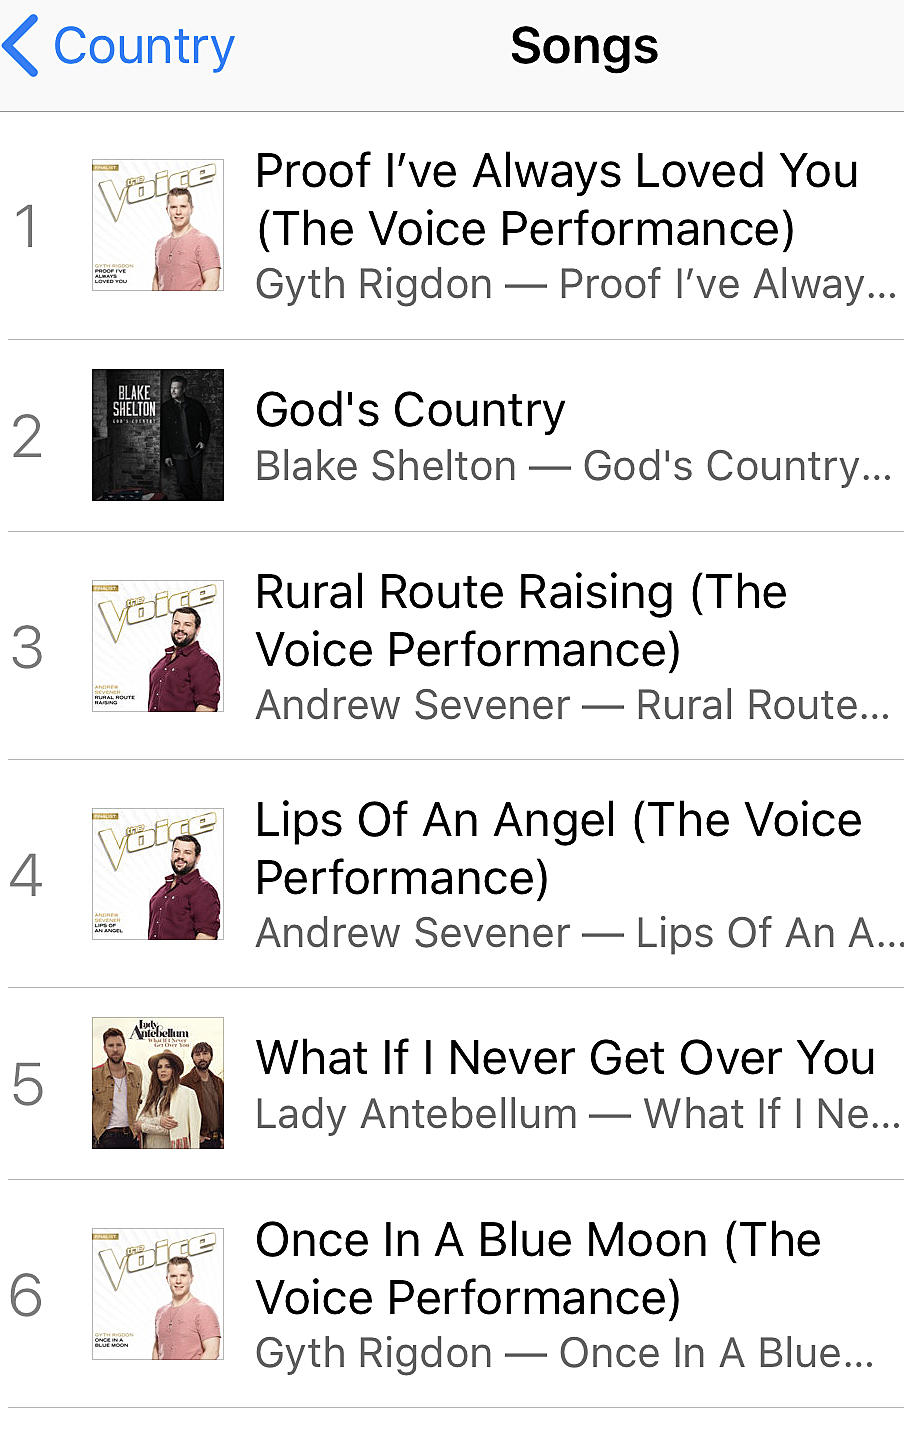 Gyth's Song 'Proof I've Always Loved You' #1 Apple Country Charts